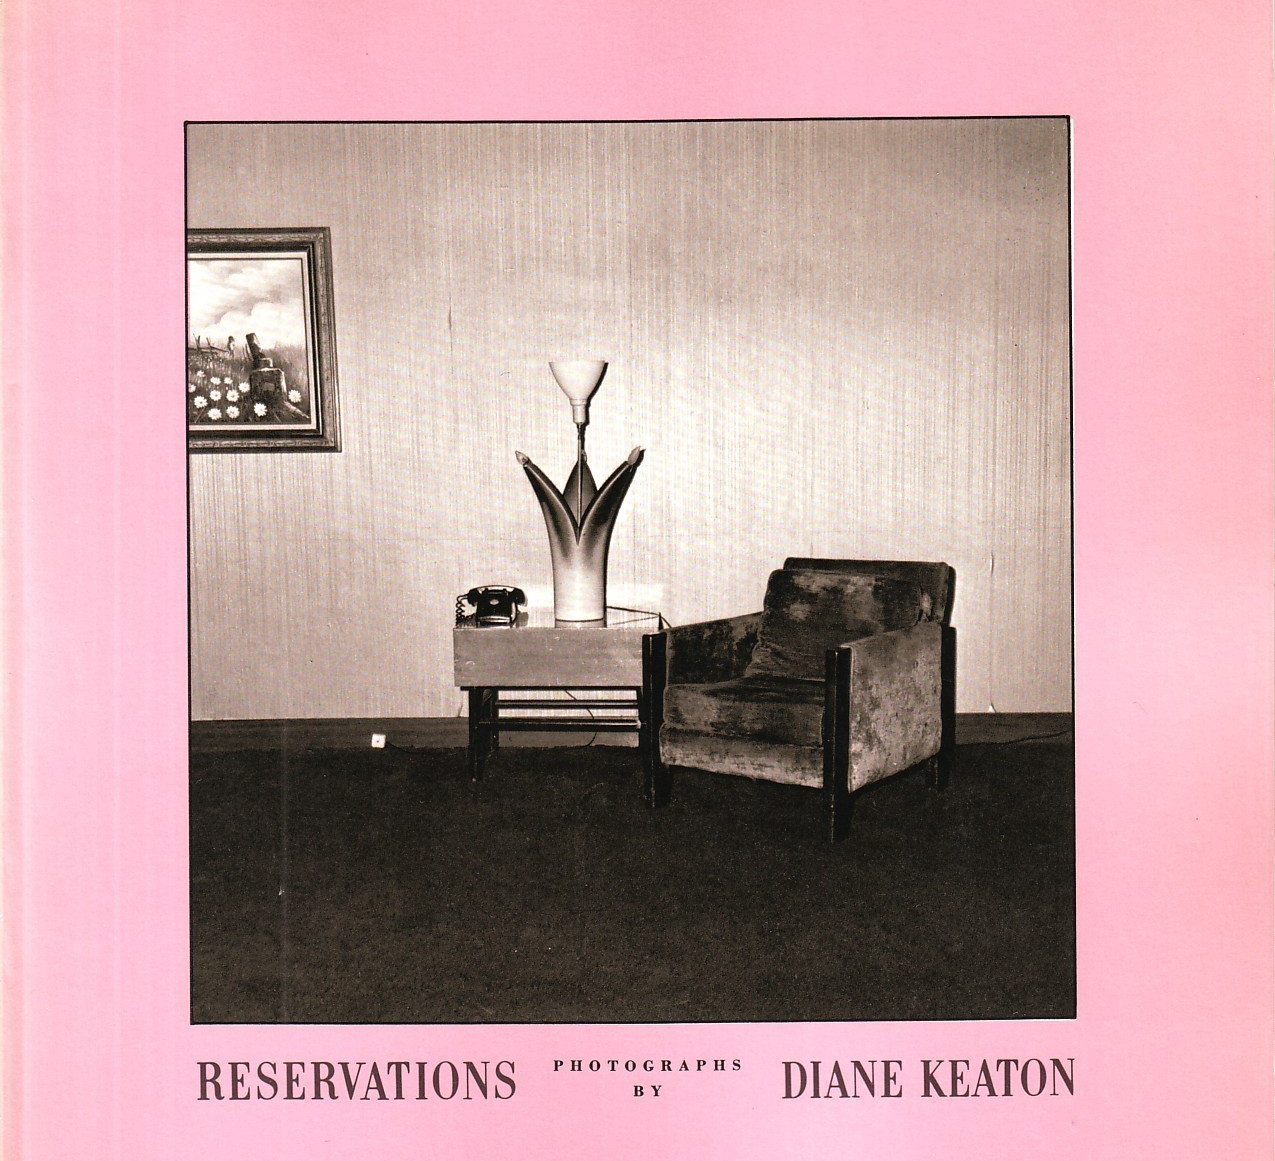 2 e1609757961194 20 Things You Never Knew About Diane Keaton